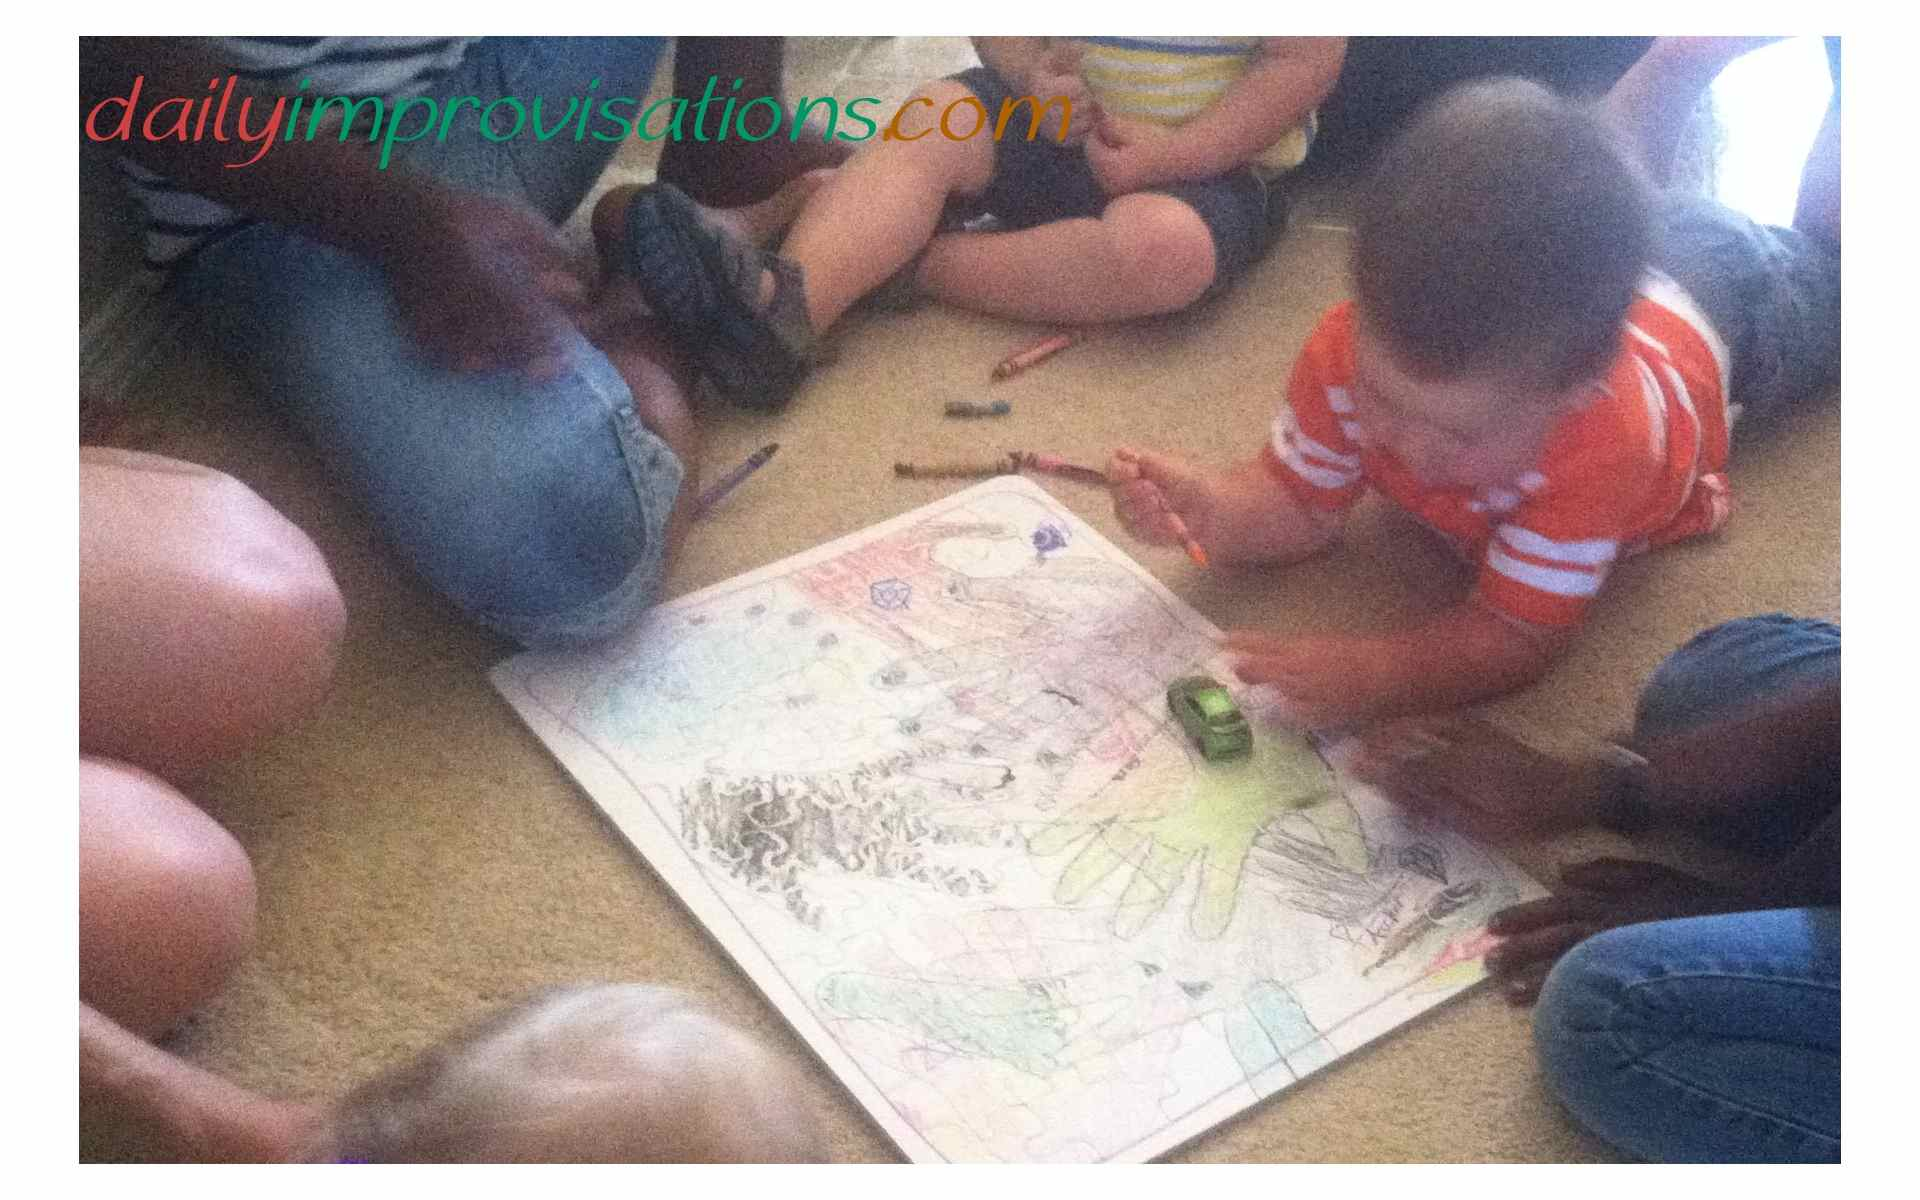 DIY Handprint Jigsaw Puzzle for Easy Kids Party Craft